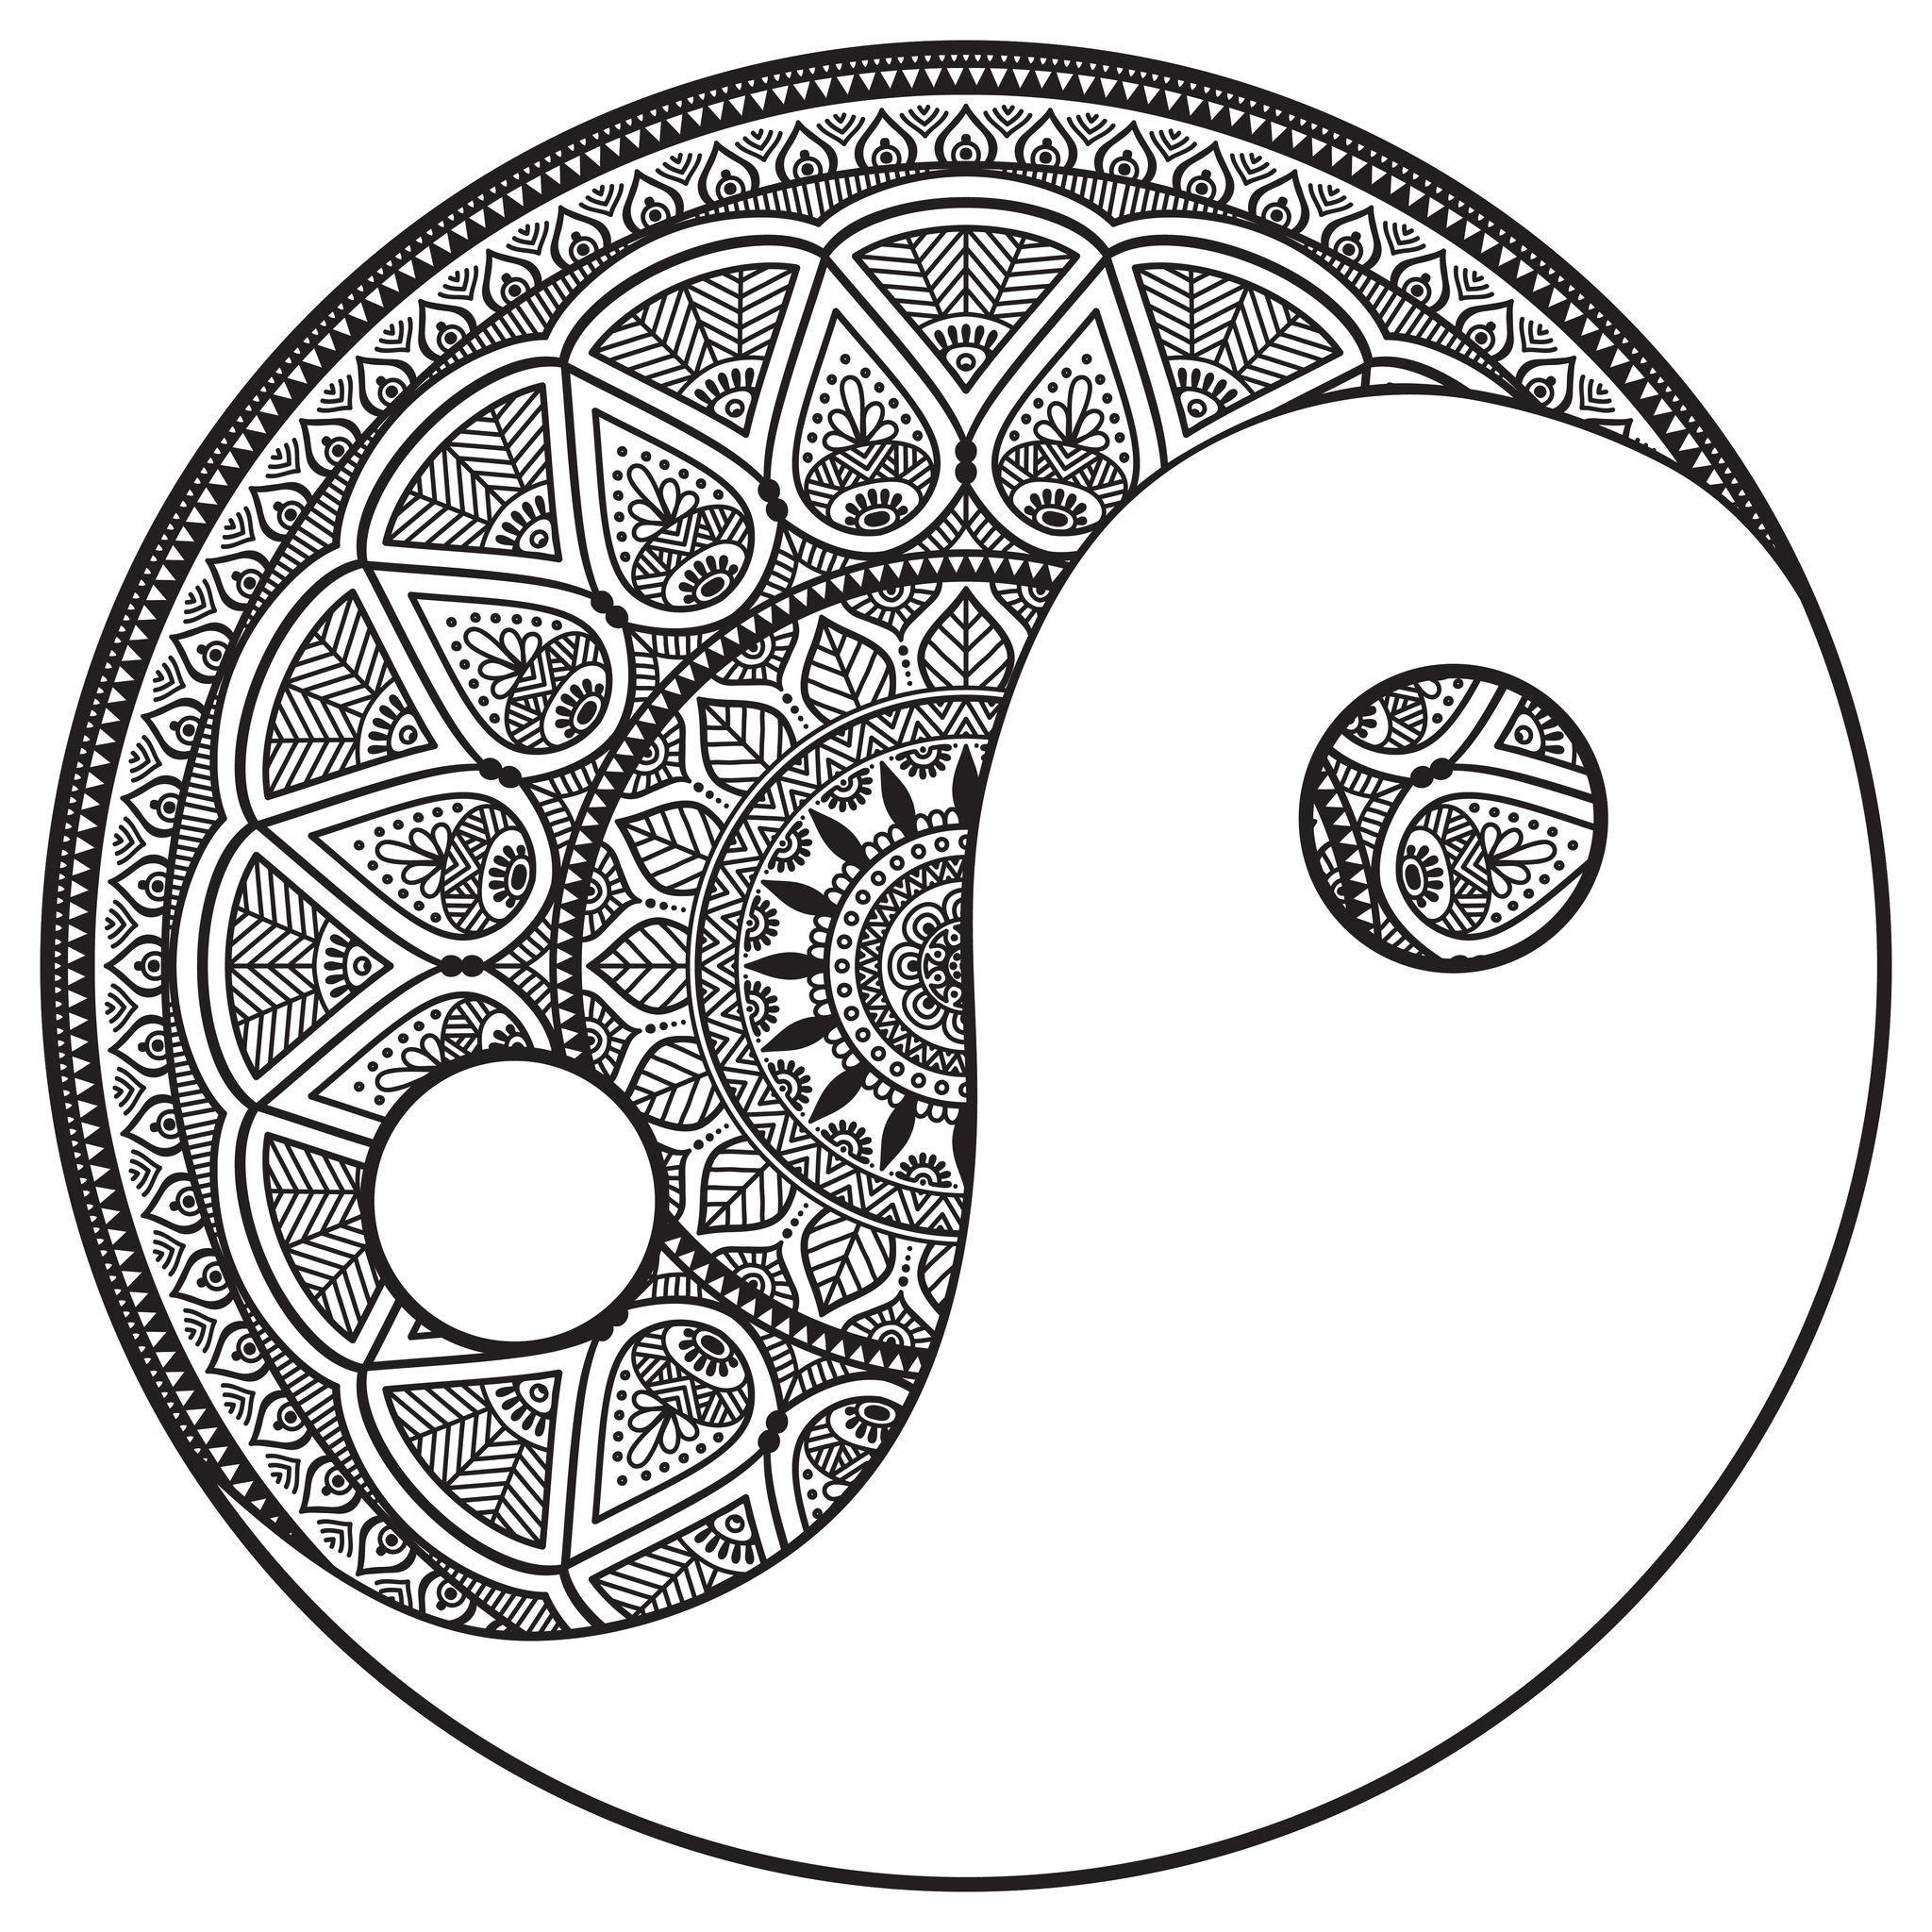 yin and yang mandala from the gallery mandalas artist snezh source